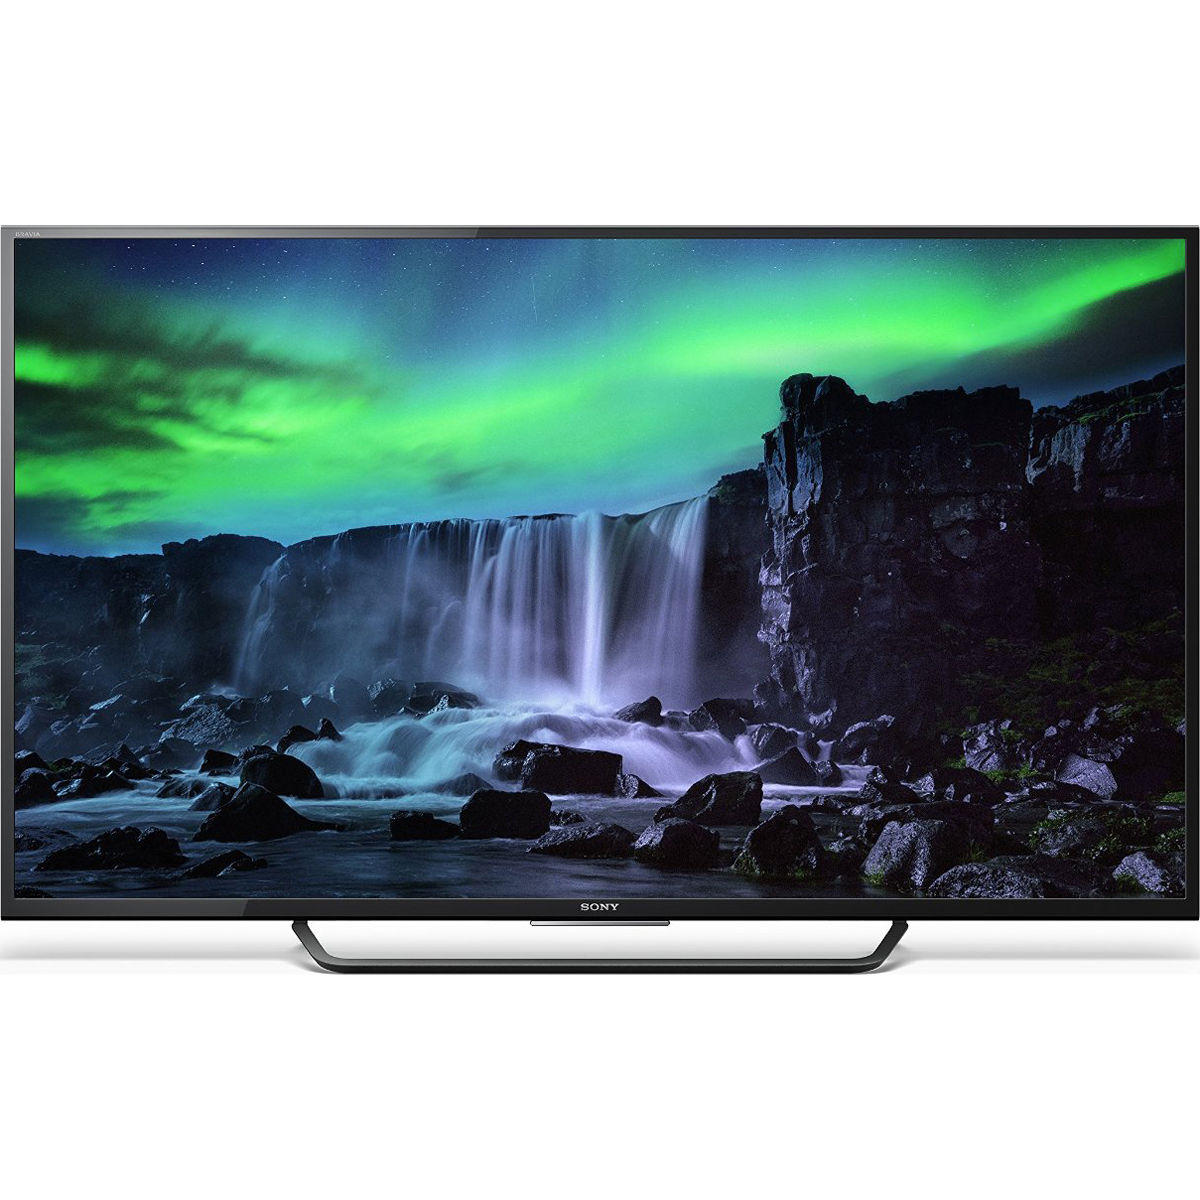 Sony XBR-55X810C - 55-Inch 4K Ultra HD 120Hz Android Smart LED TV